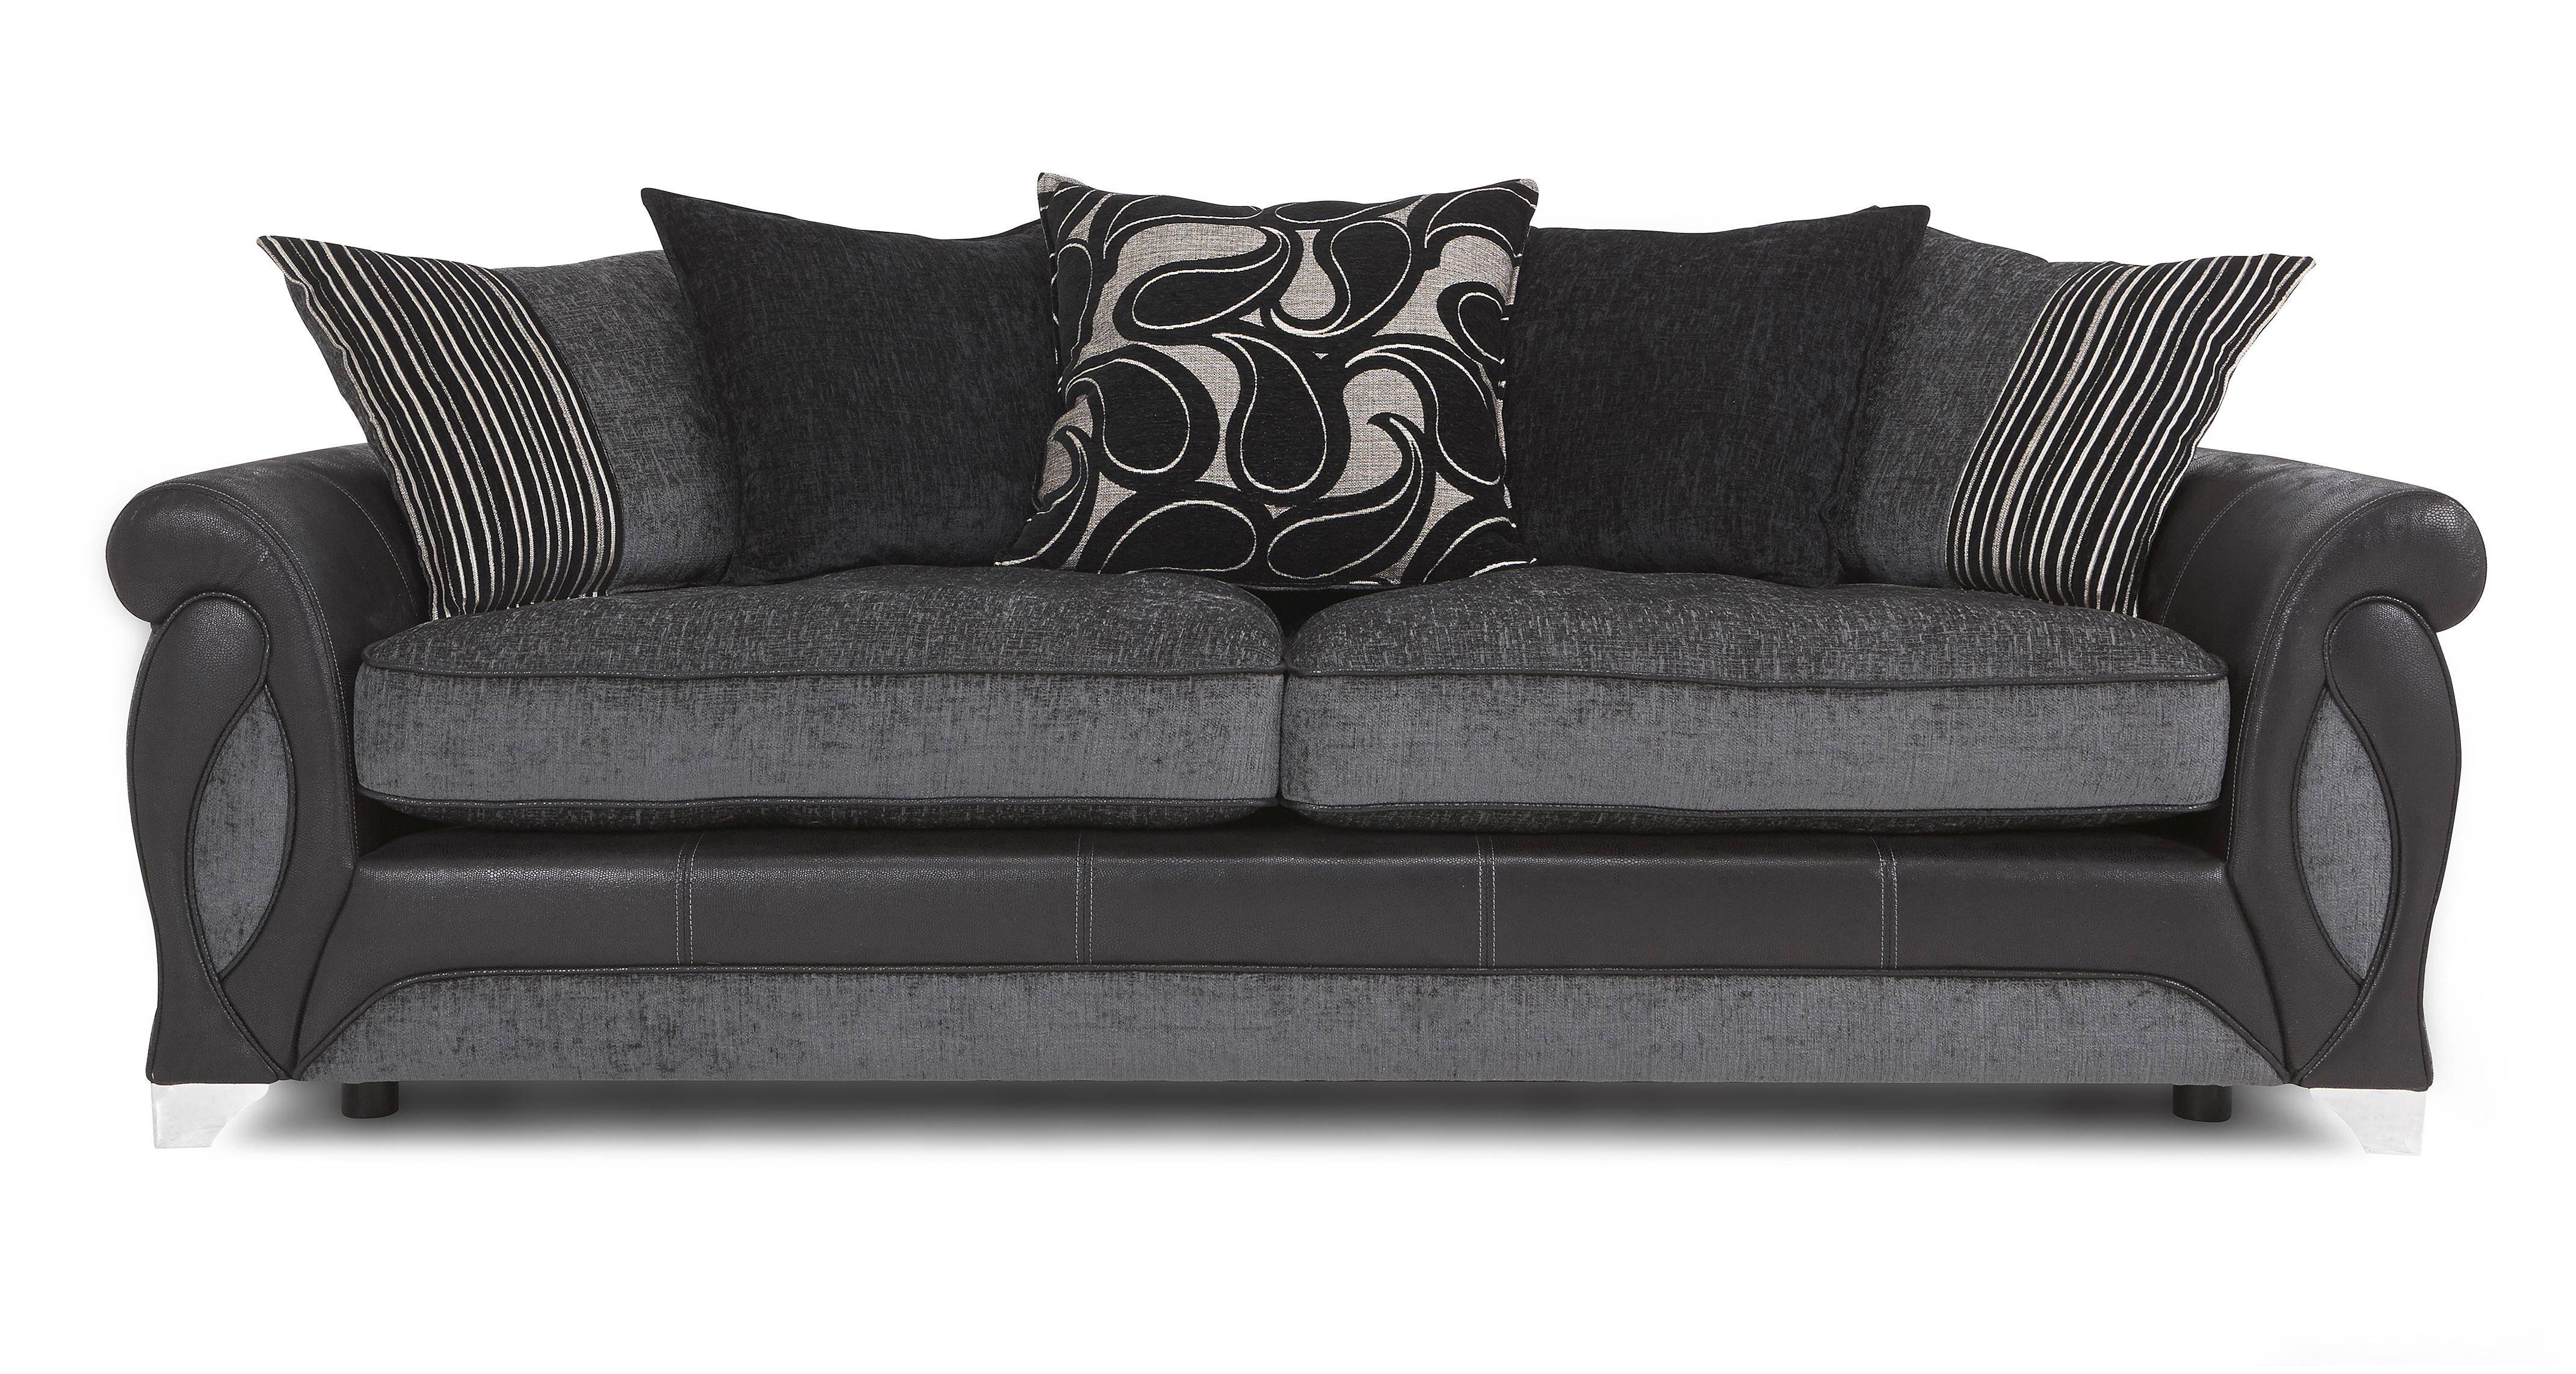 replacement cushion covers for dfs sofas sofa springfield mo brokeasshome